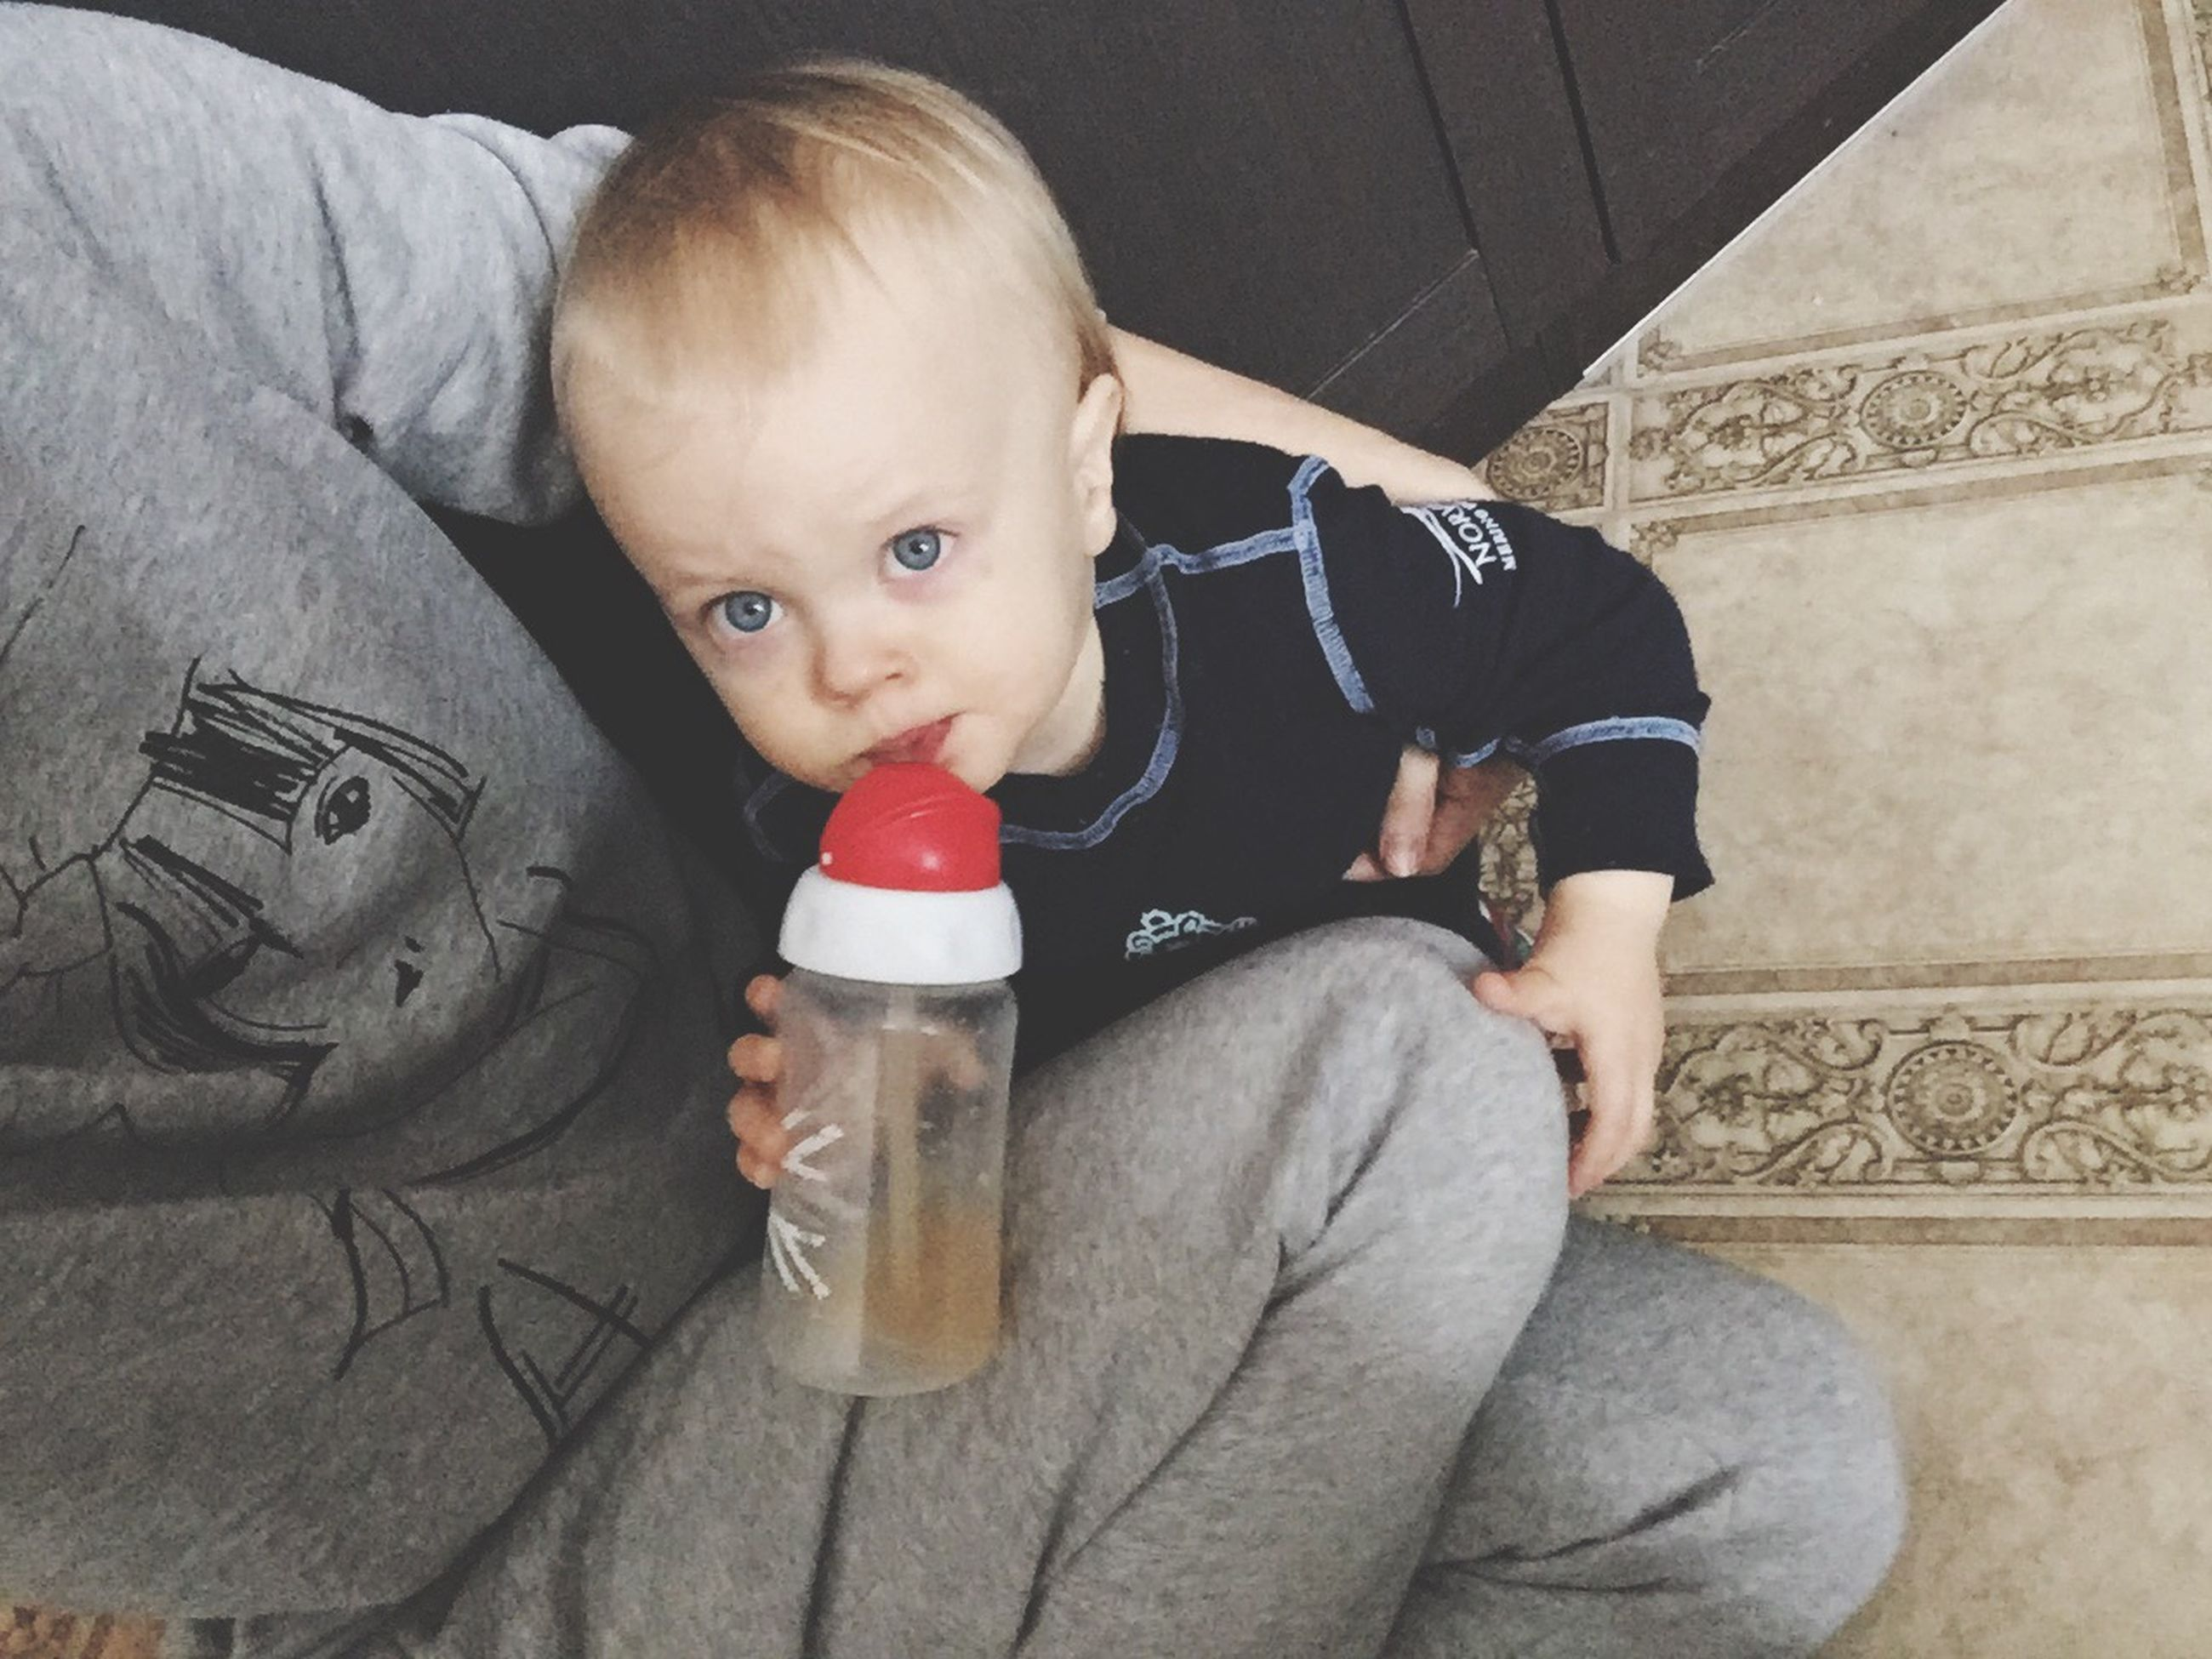 baby, babyhood, innocence, drinking, casual clothing, holding, toddler, sucking, looking at camera, indoors, portrait, childhood, full length, real people, food and drink, people, one person, babies only, eating, human body part, domestic life, adult, day